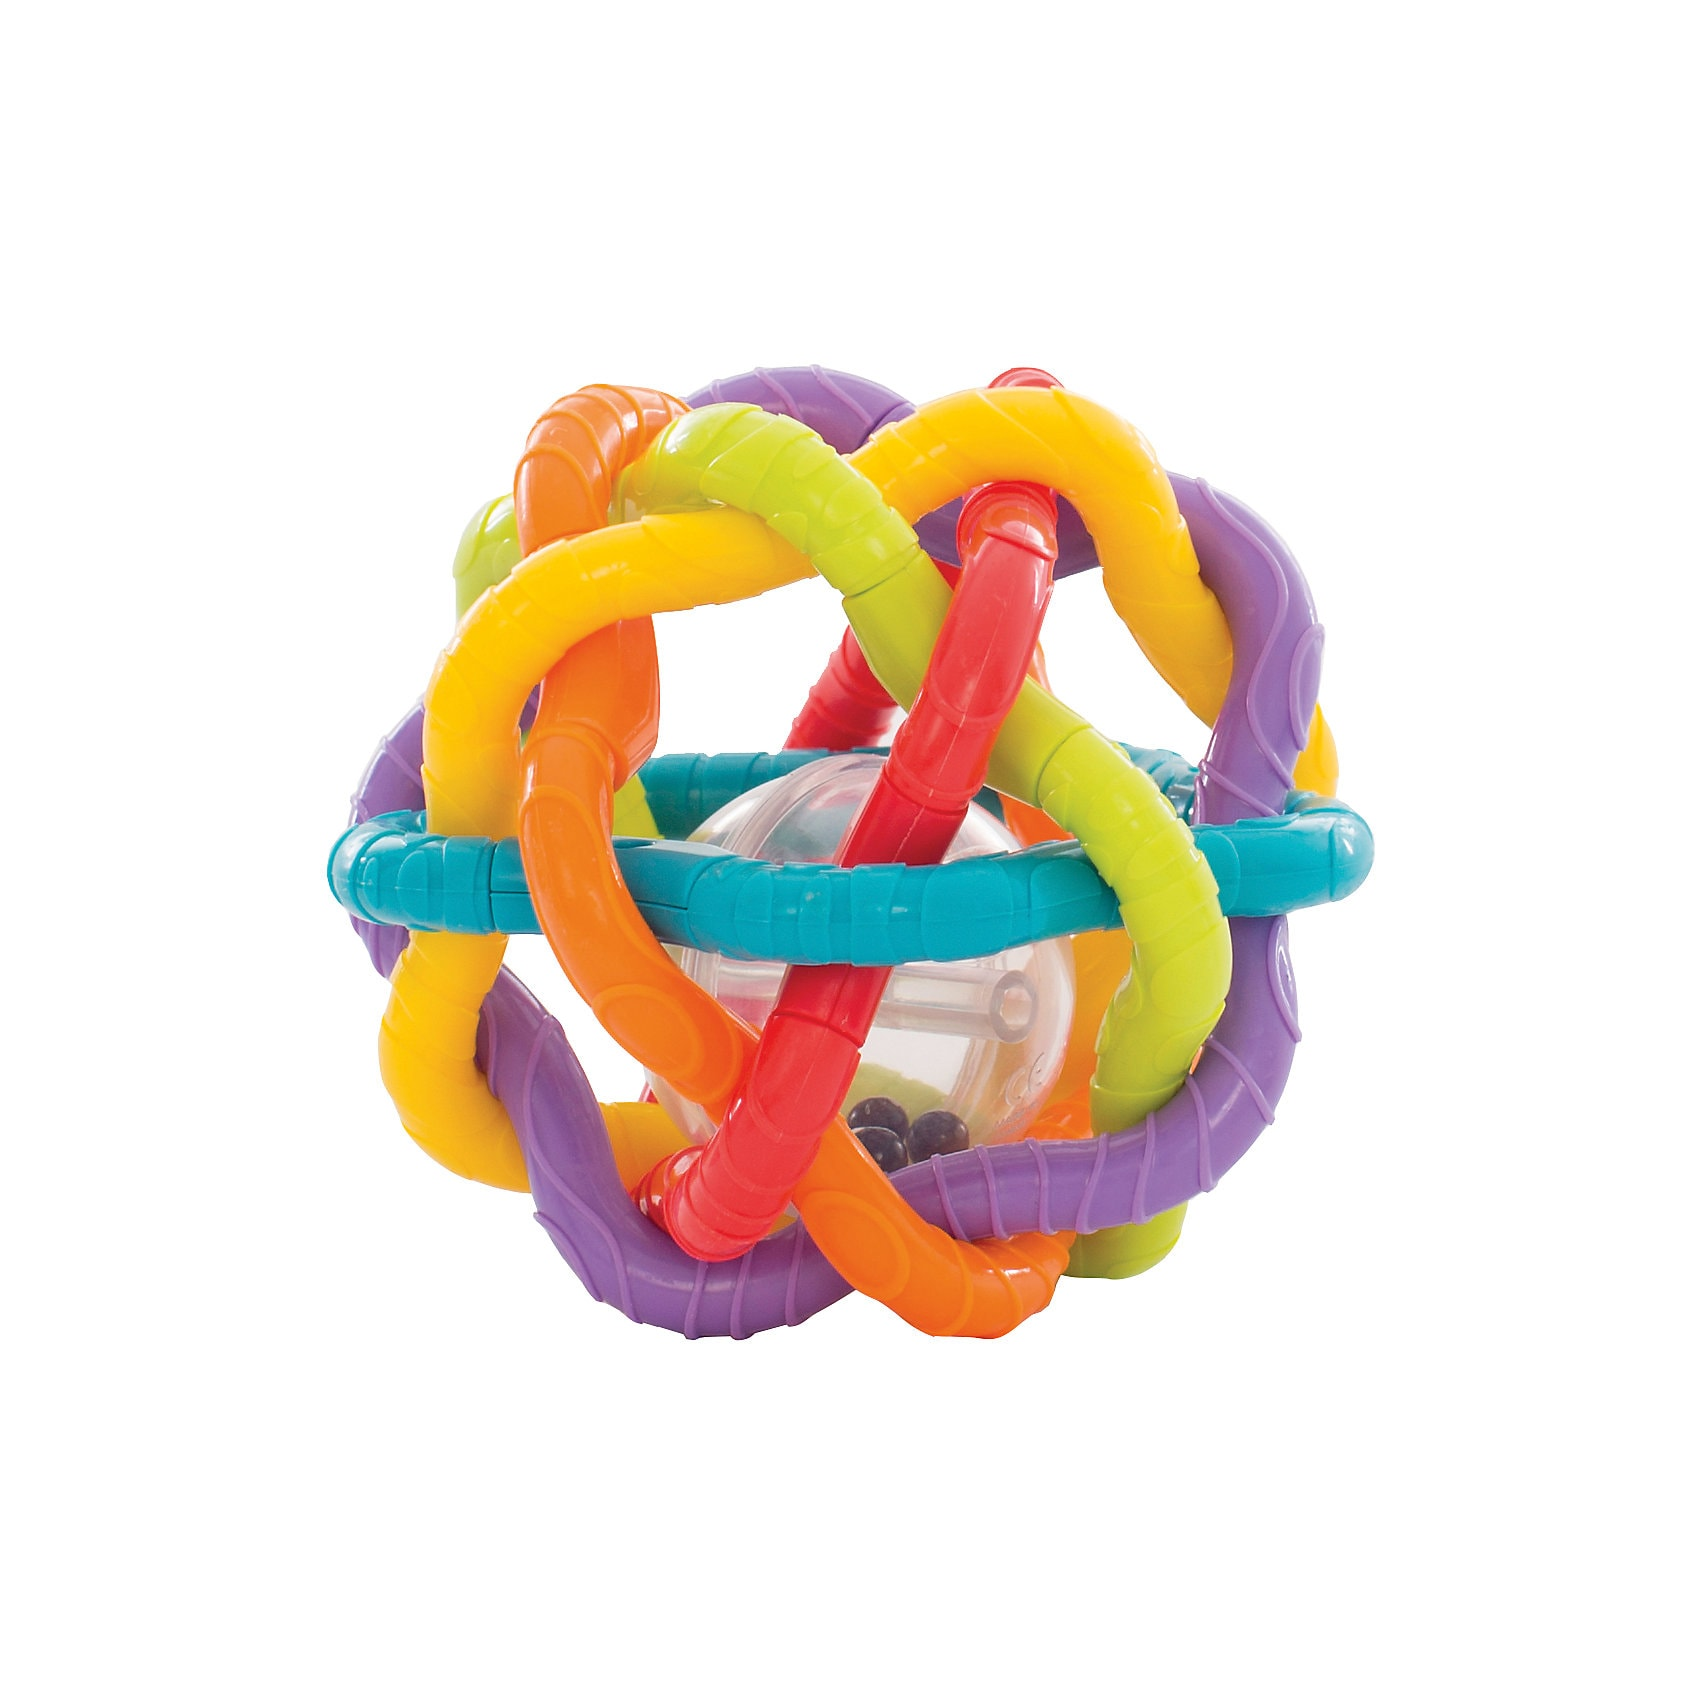 Playgro Rassel Greifball Bendy Ball